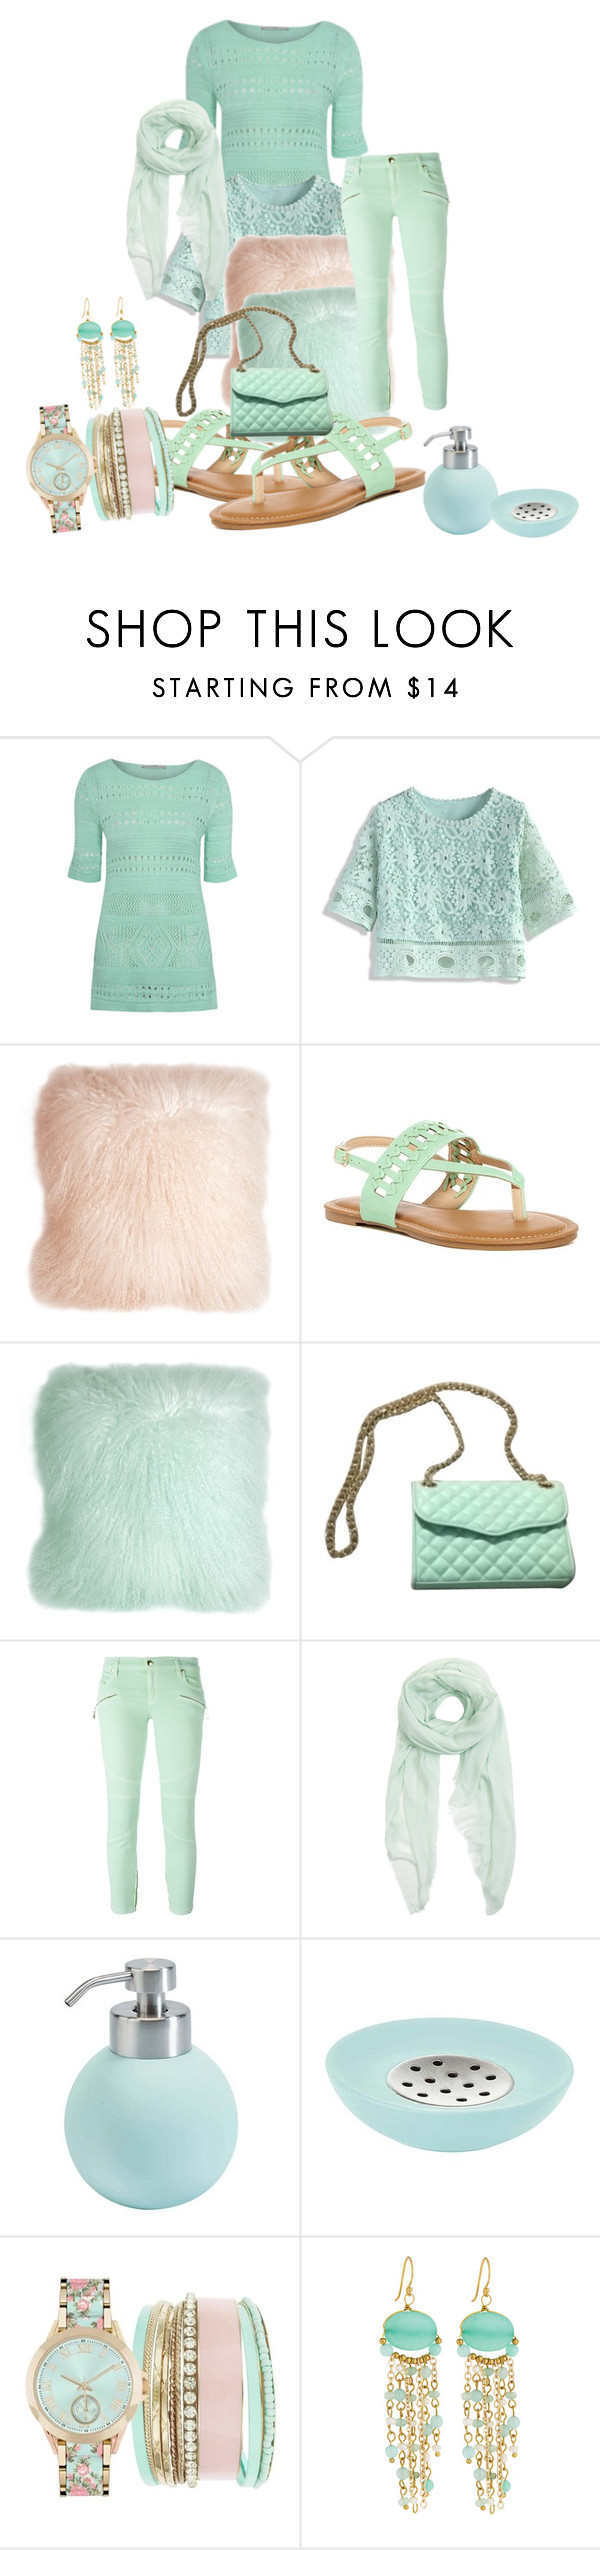 """mint bags and shoes"" by polyyvor ❤ liked on Polyvore featuring George, Chicwish, Pillow Decor, Rebecca Minkoff, Just Cavalli, Furla, Aquanova, Jessica Carlyle and Panacea"